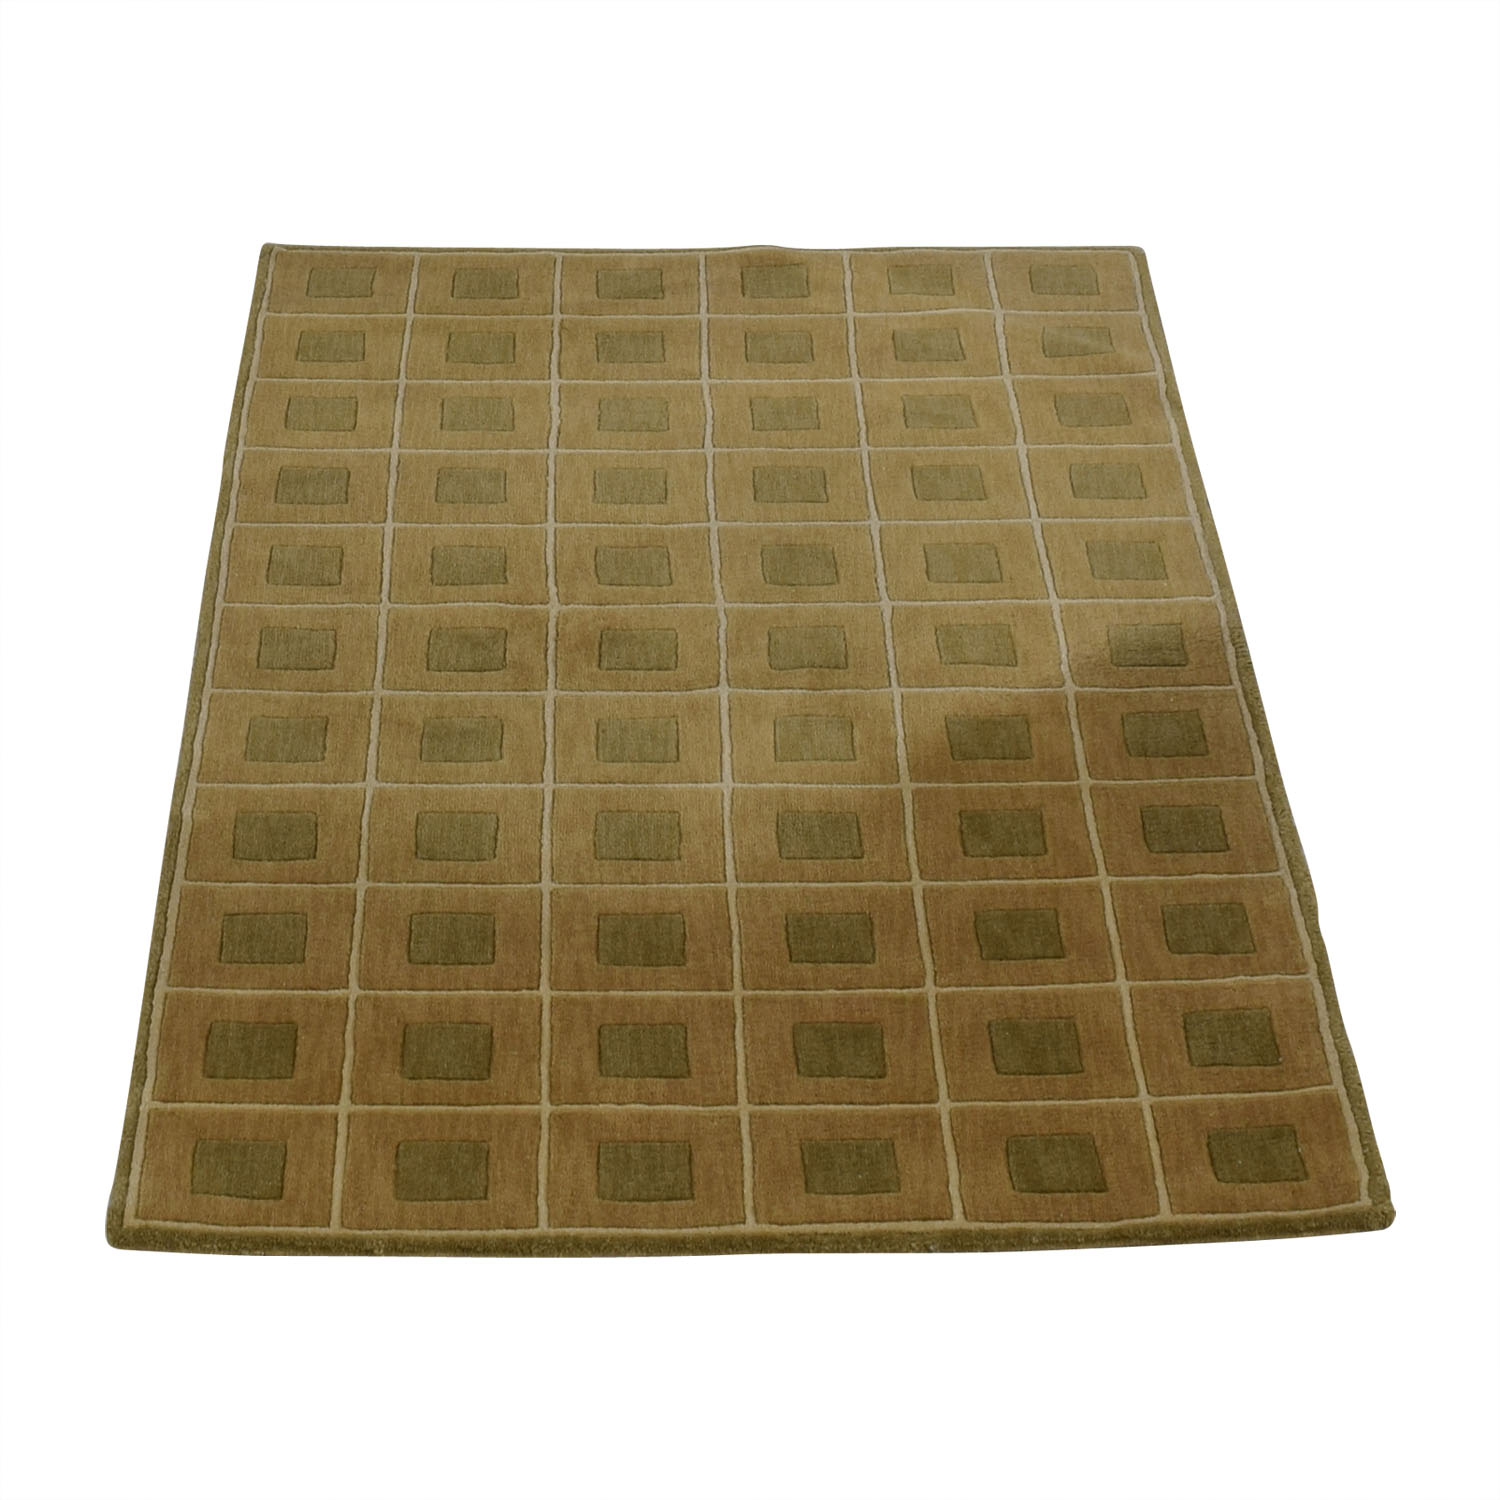 ABC Carpet & Home ABC Carpet & Home Runner Rug coupon